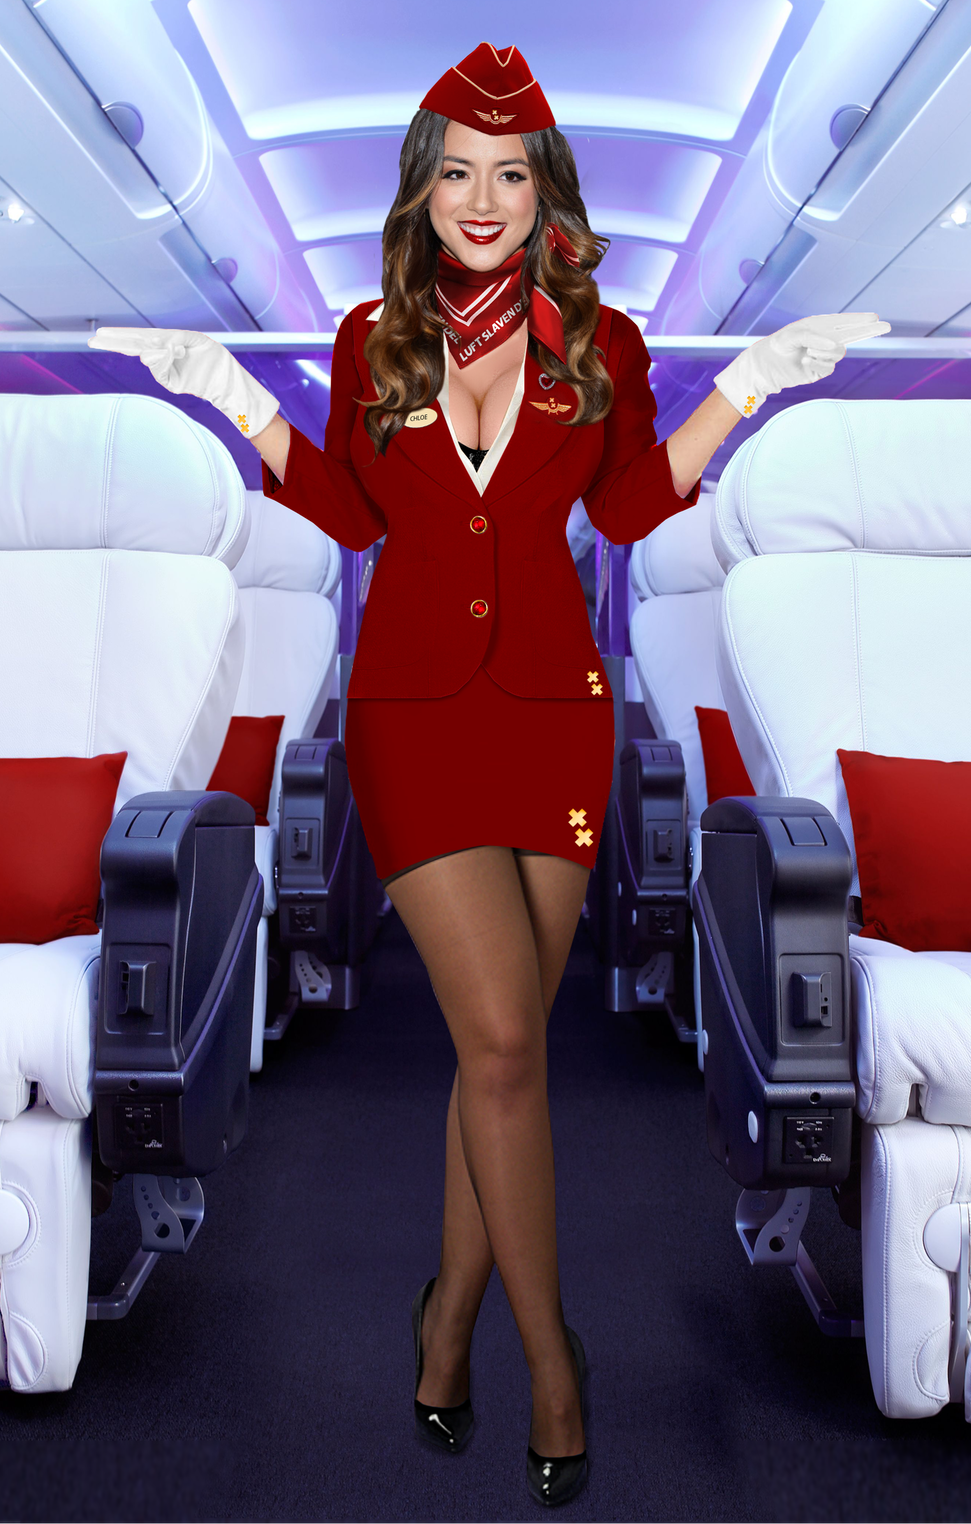 sexy-airline-stewardess